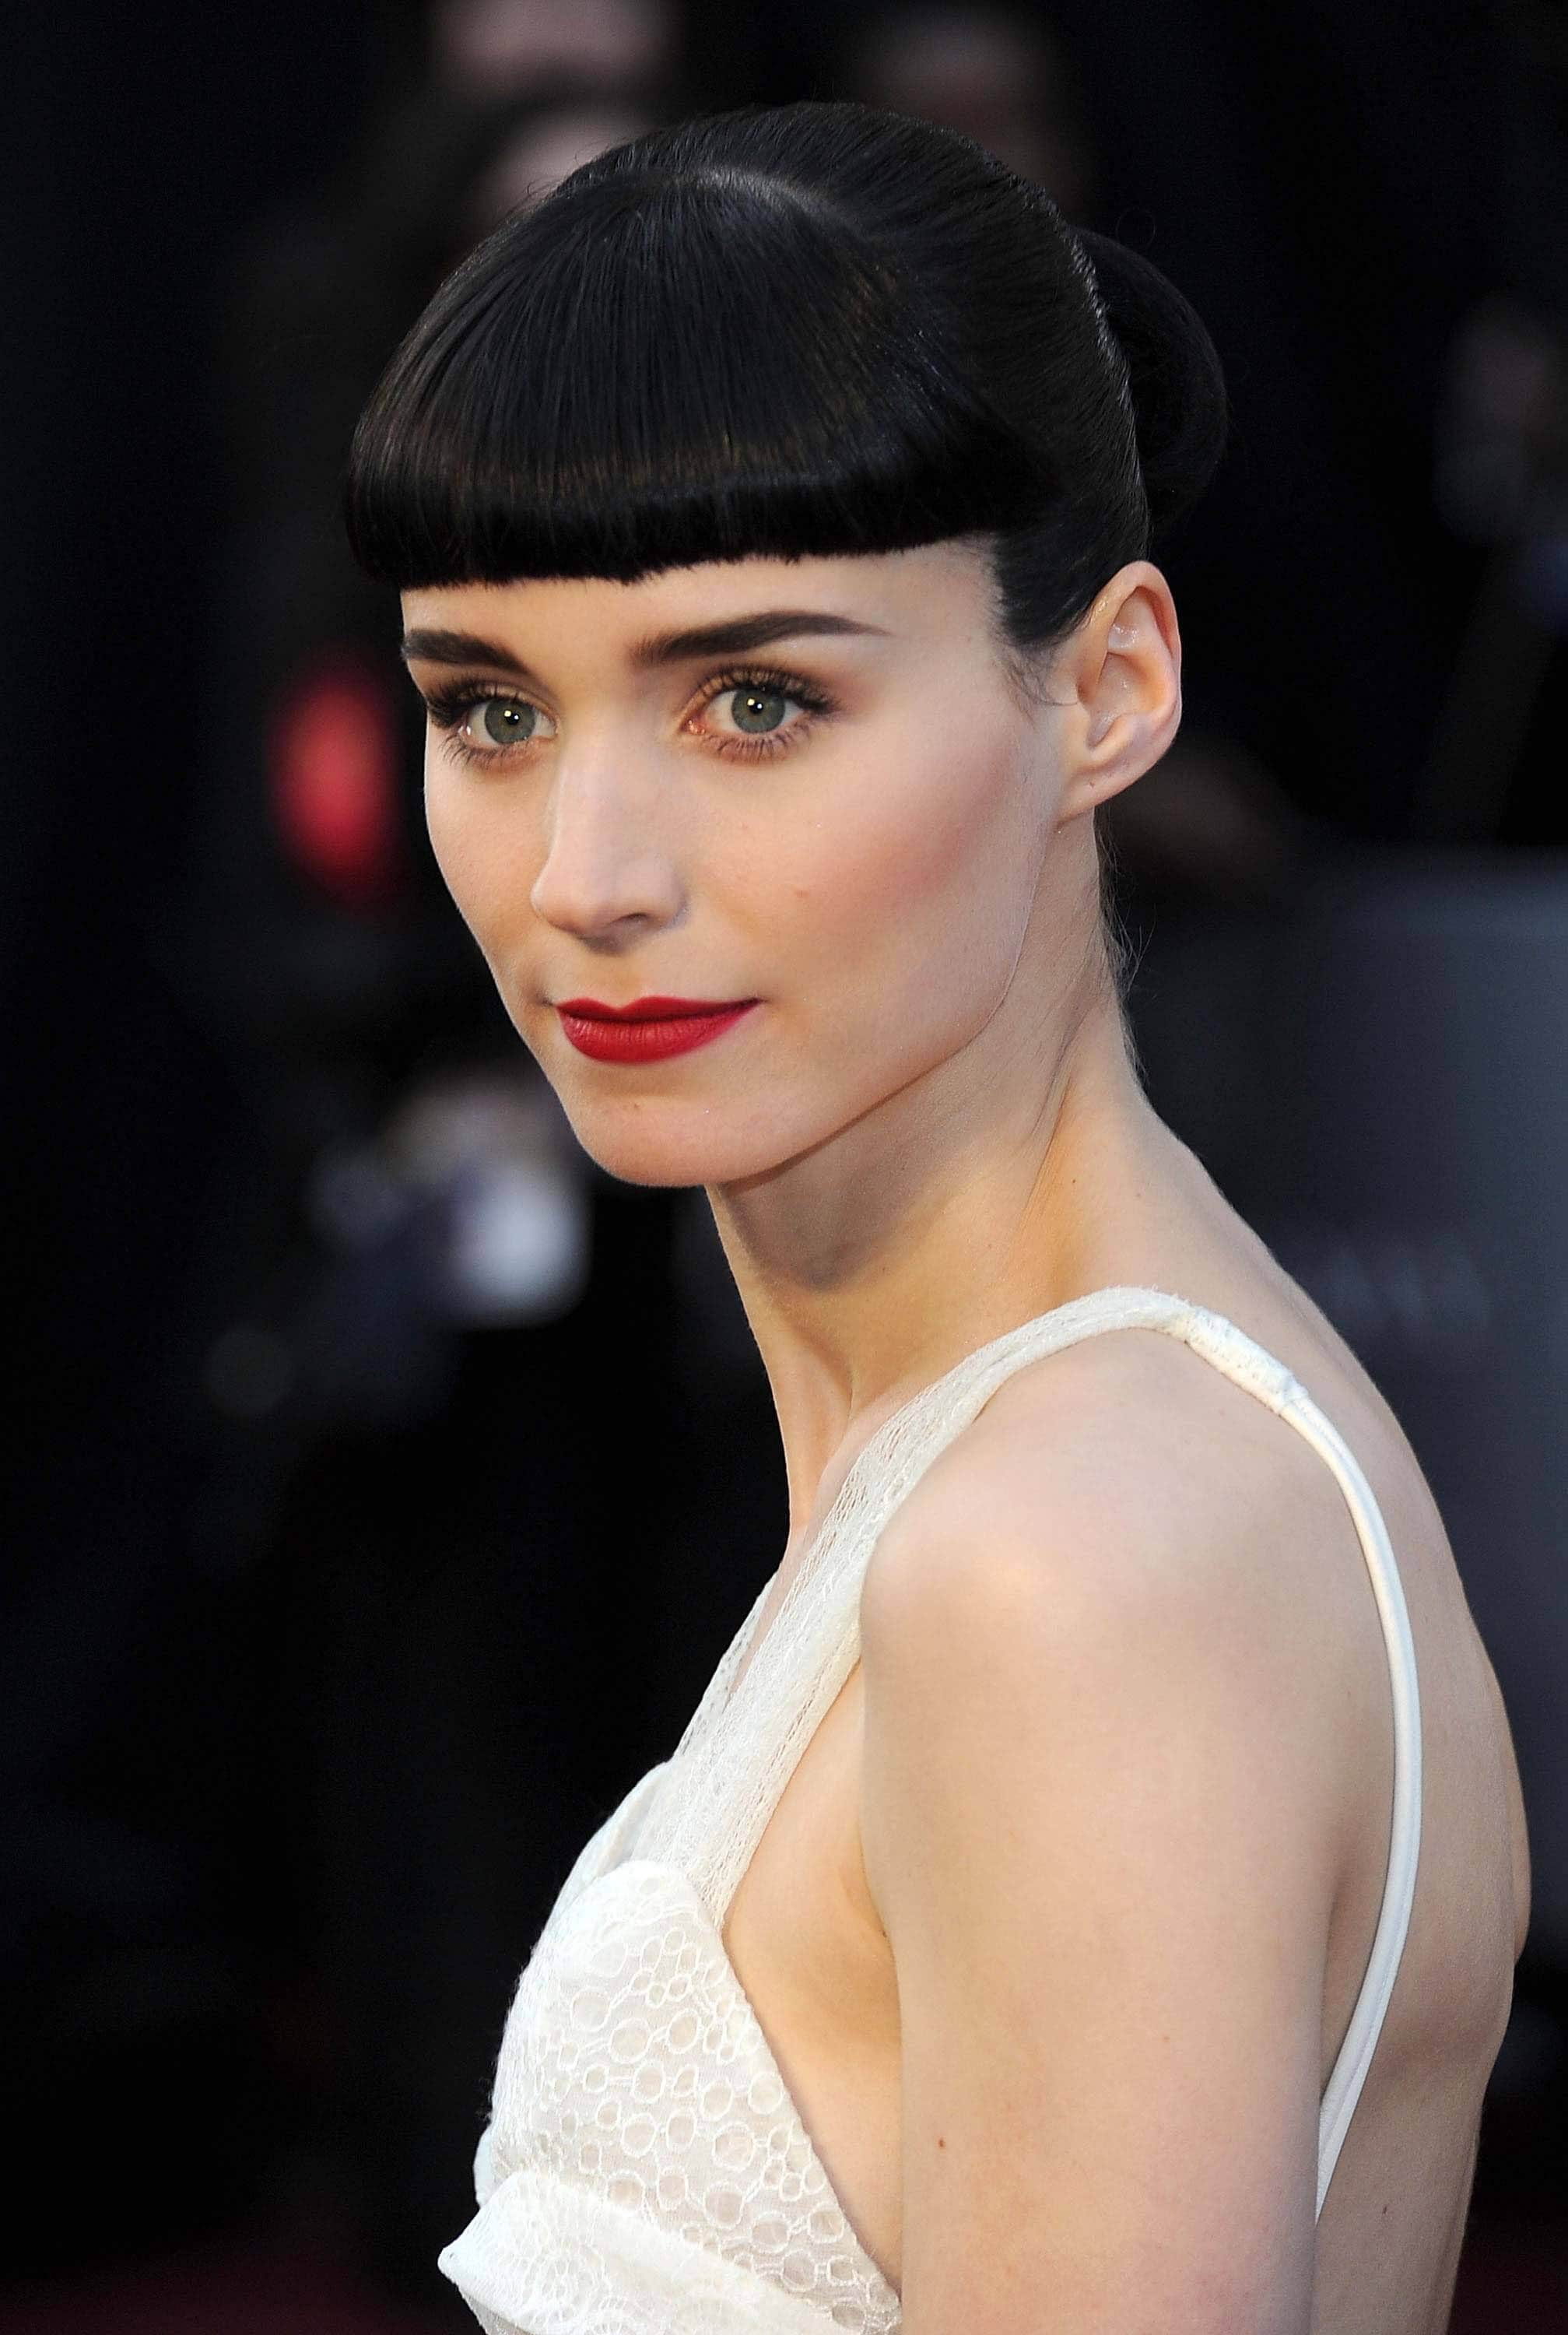 close up shot of rooney mara with blunt bangs and bun hairstyle, wearing red lipstick and white dress on the red carpet